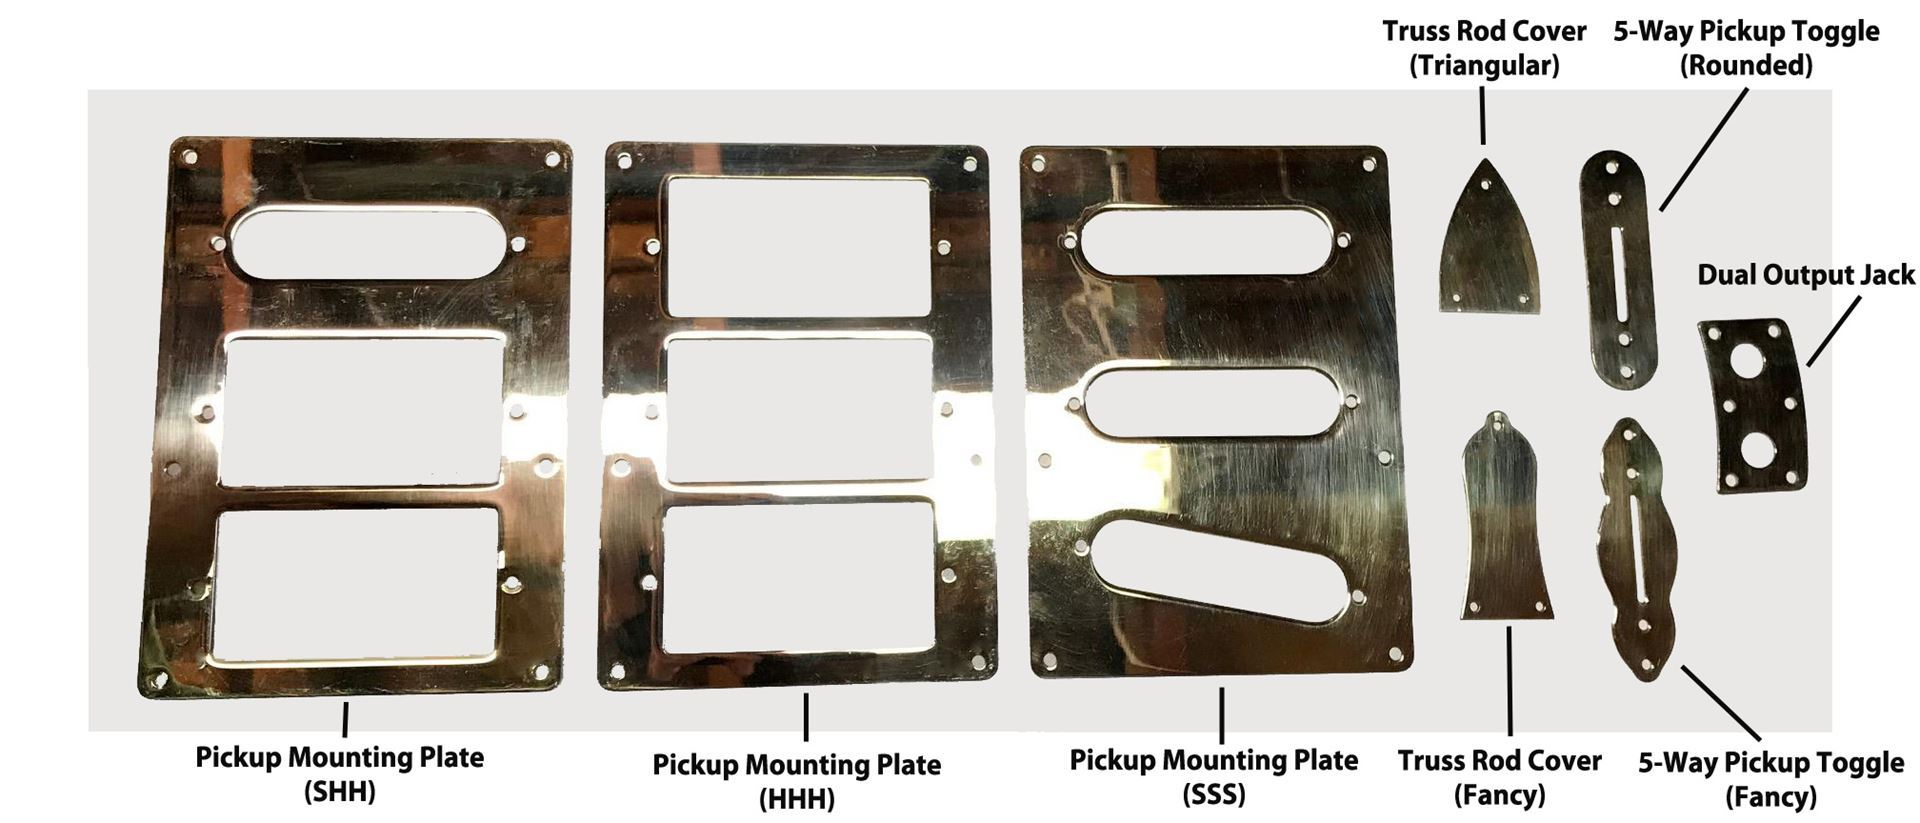 Brass Mounting Plates